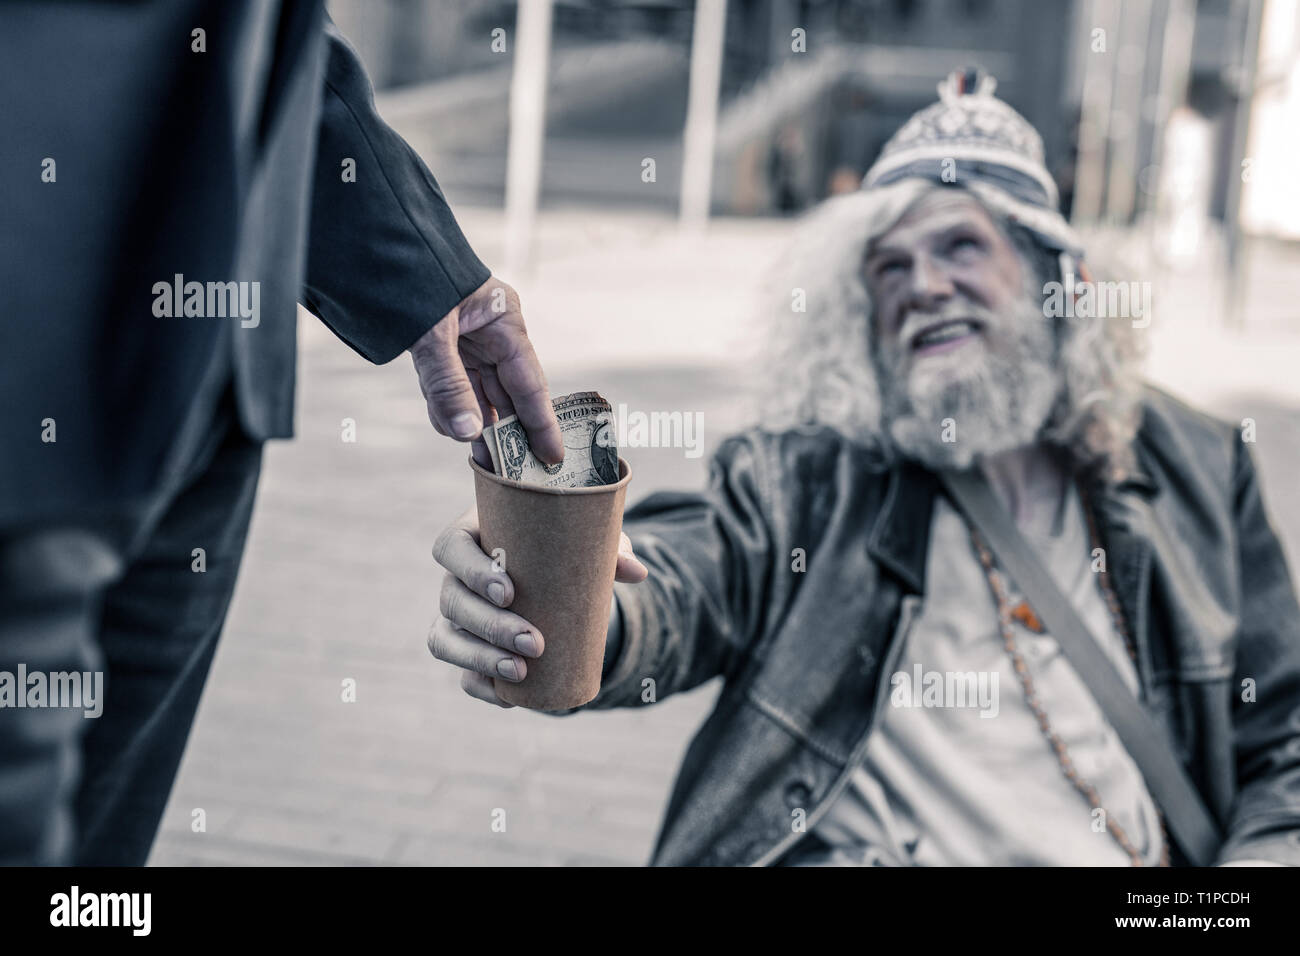 Thankful homeless man with dirty hair stretching empty coffee cup - Stock Image